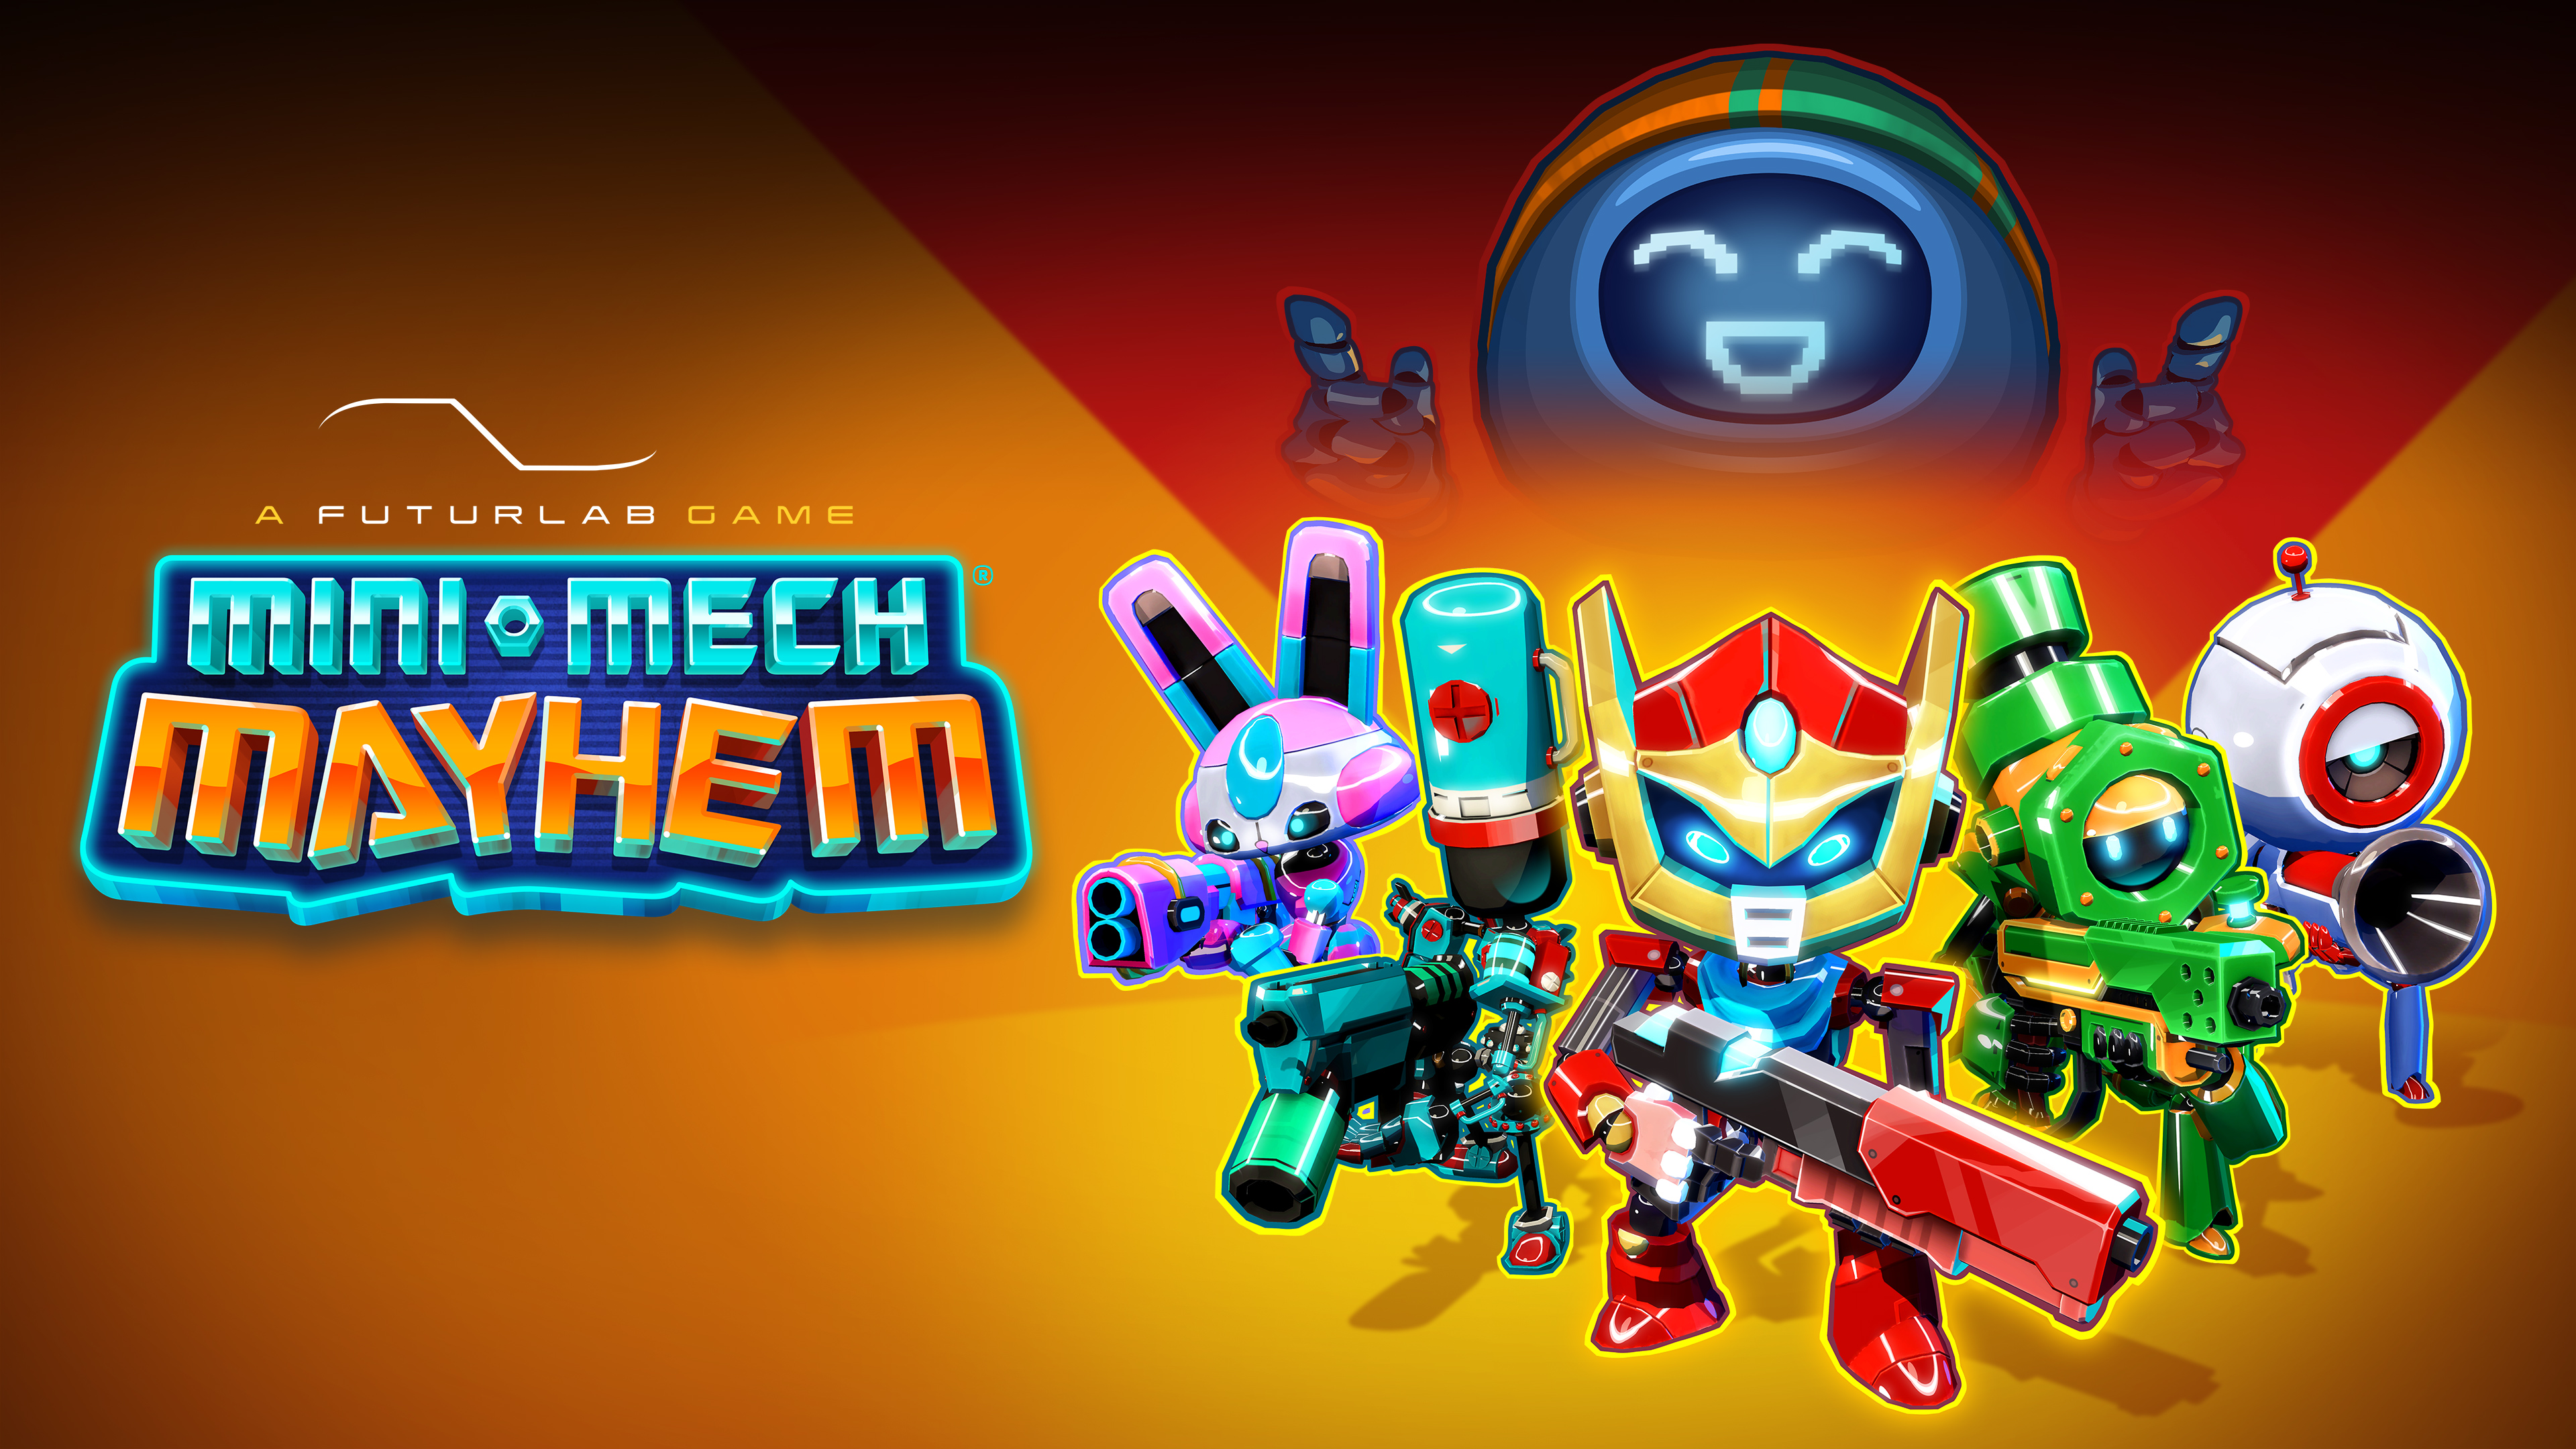 Mini-Mech-Mayhem Brings A Strategic Mech Battle Game To VR, Digital Strategy Has Never Been So Cute